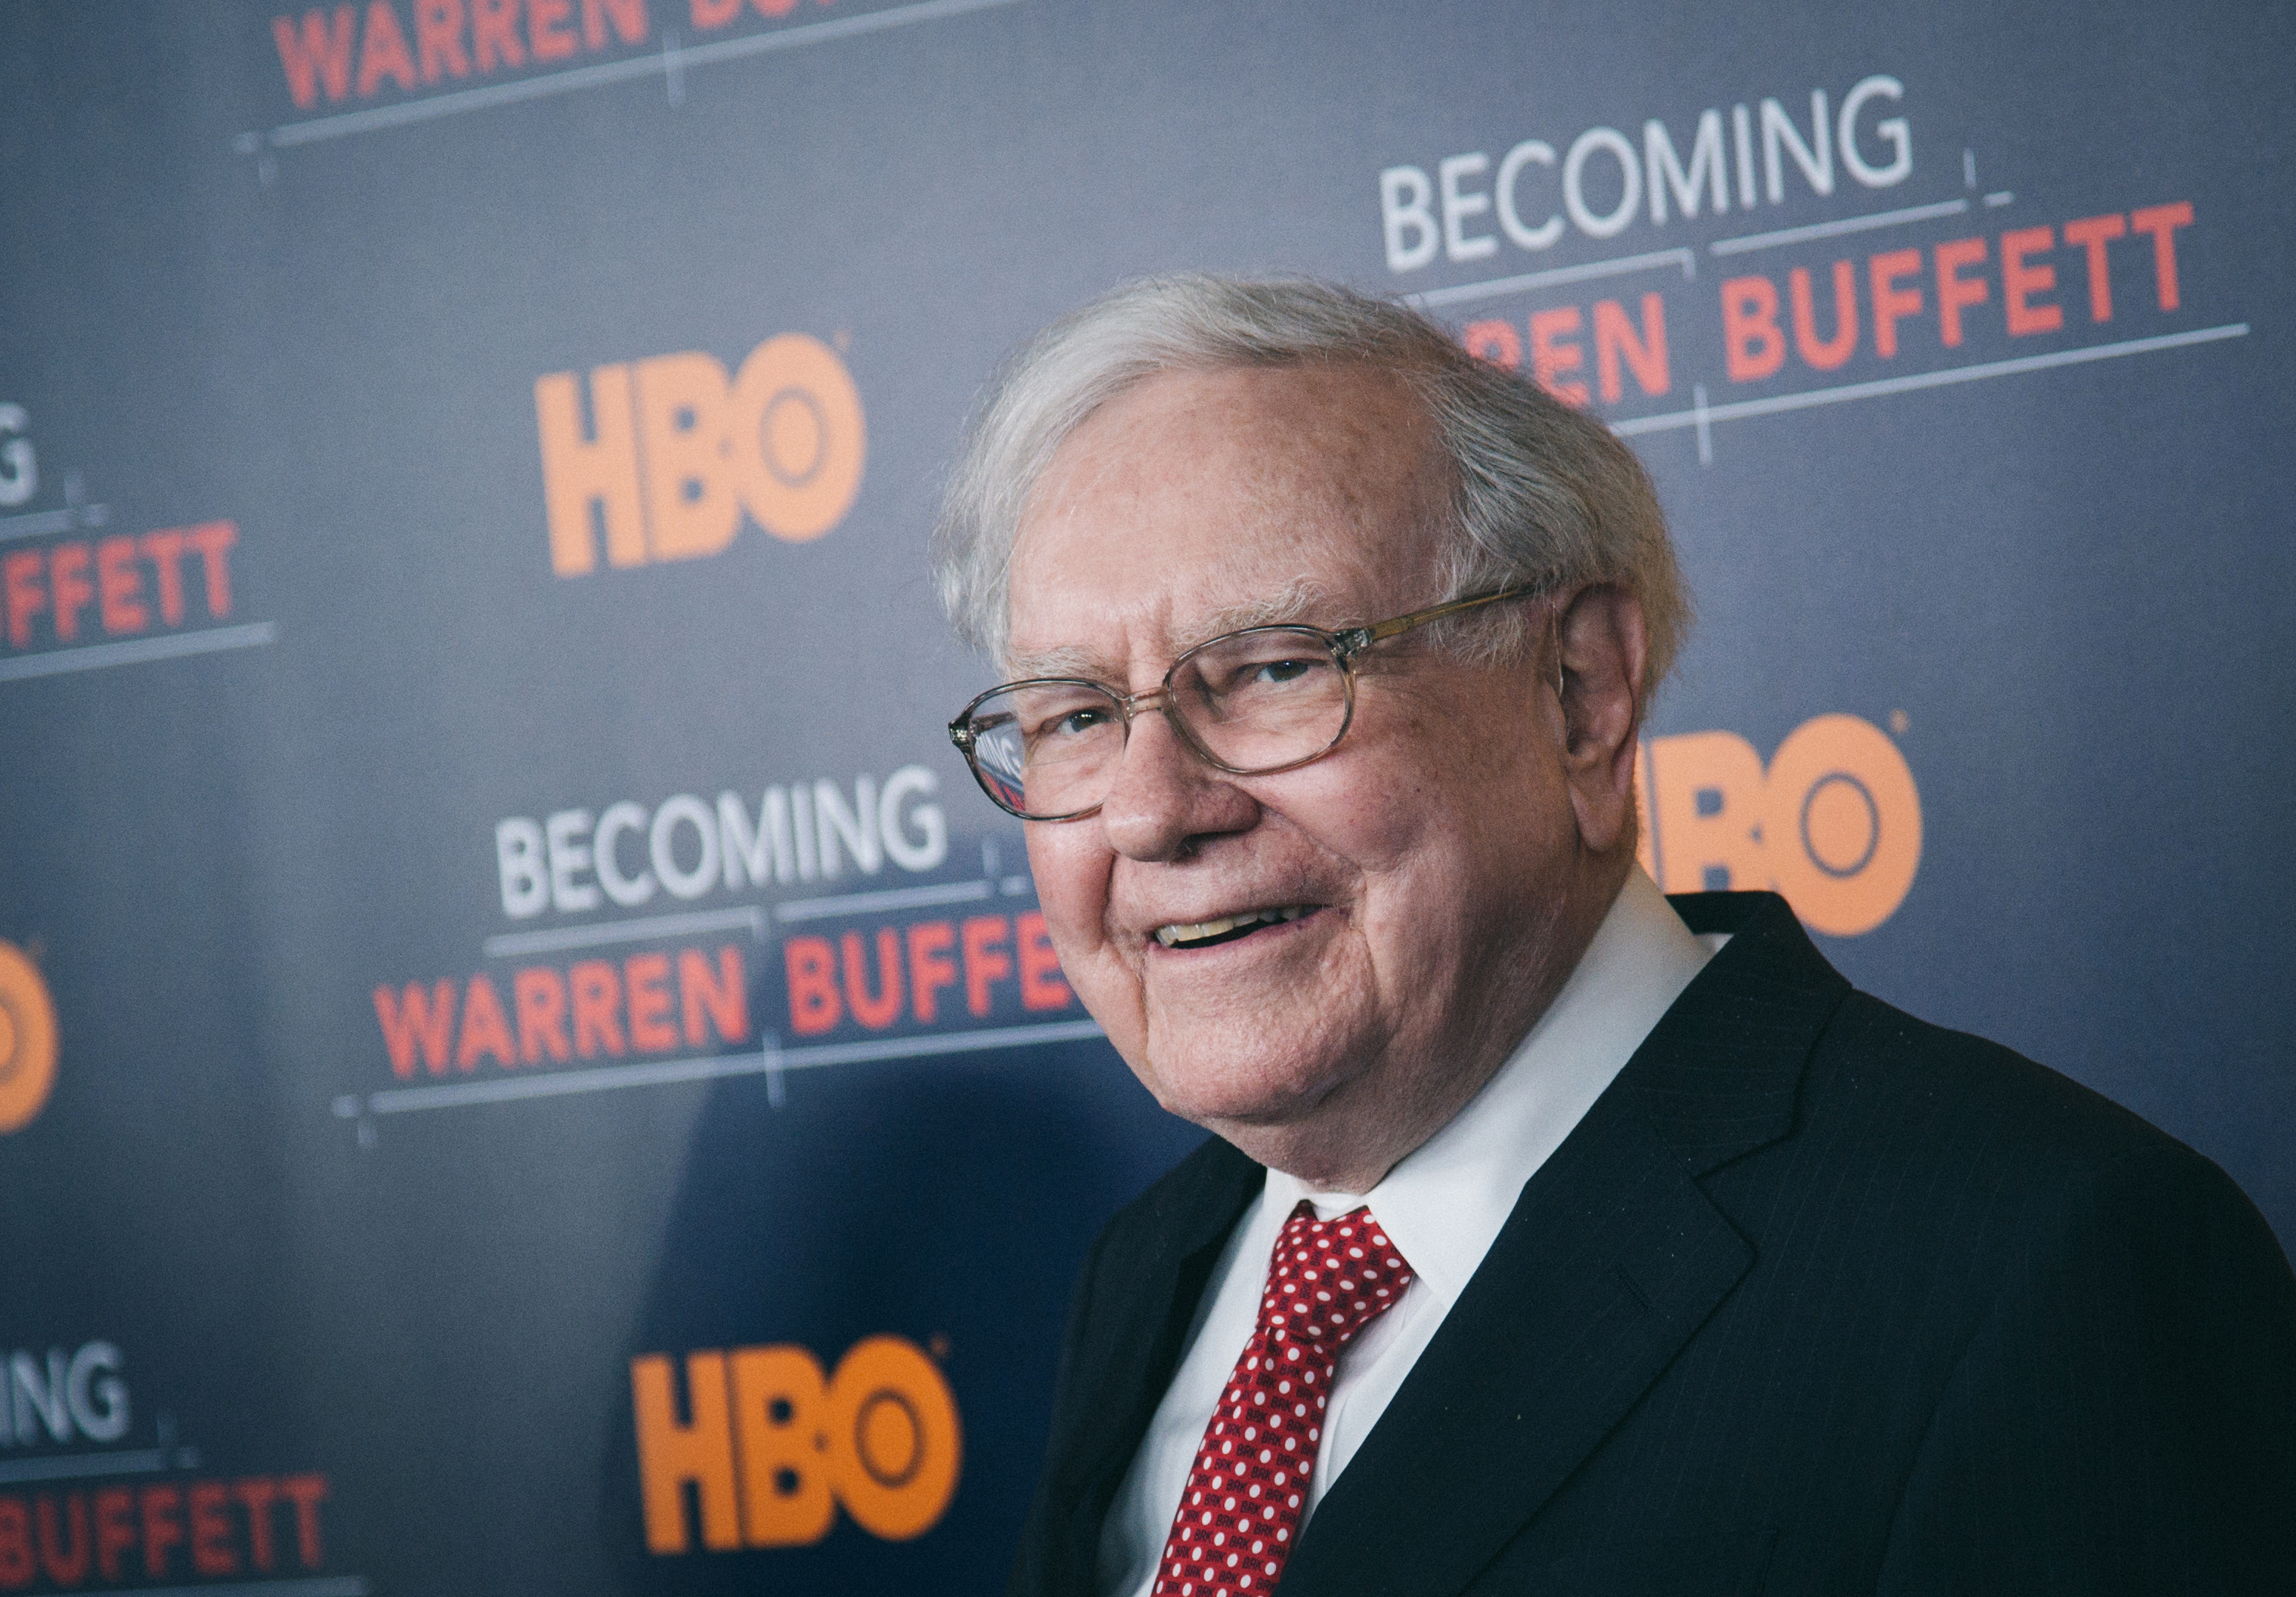 Teva Is Drowning in Debt and Firing Thousands of Employees. Now Warren Buffett Is Interested